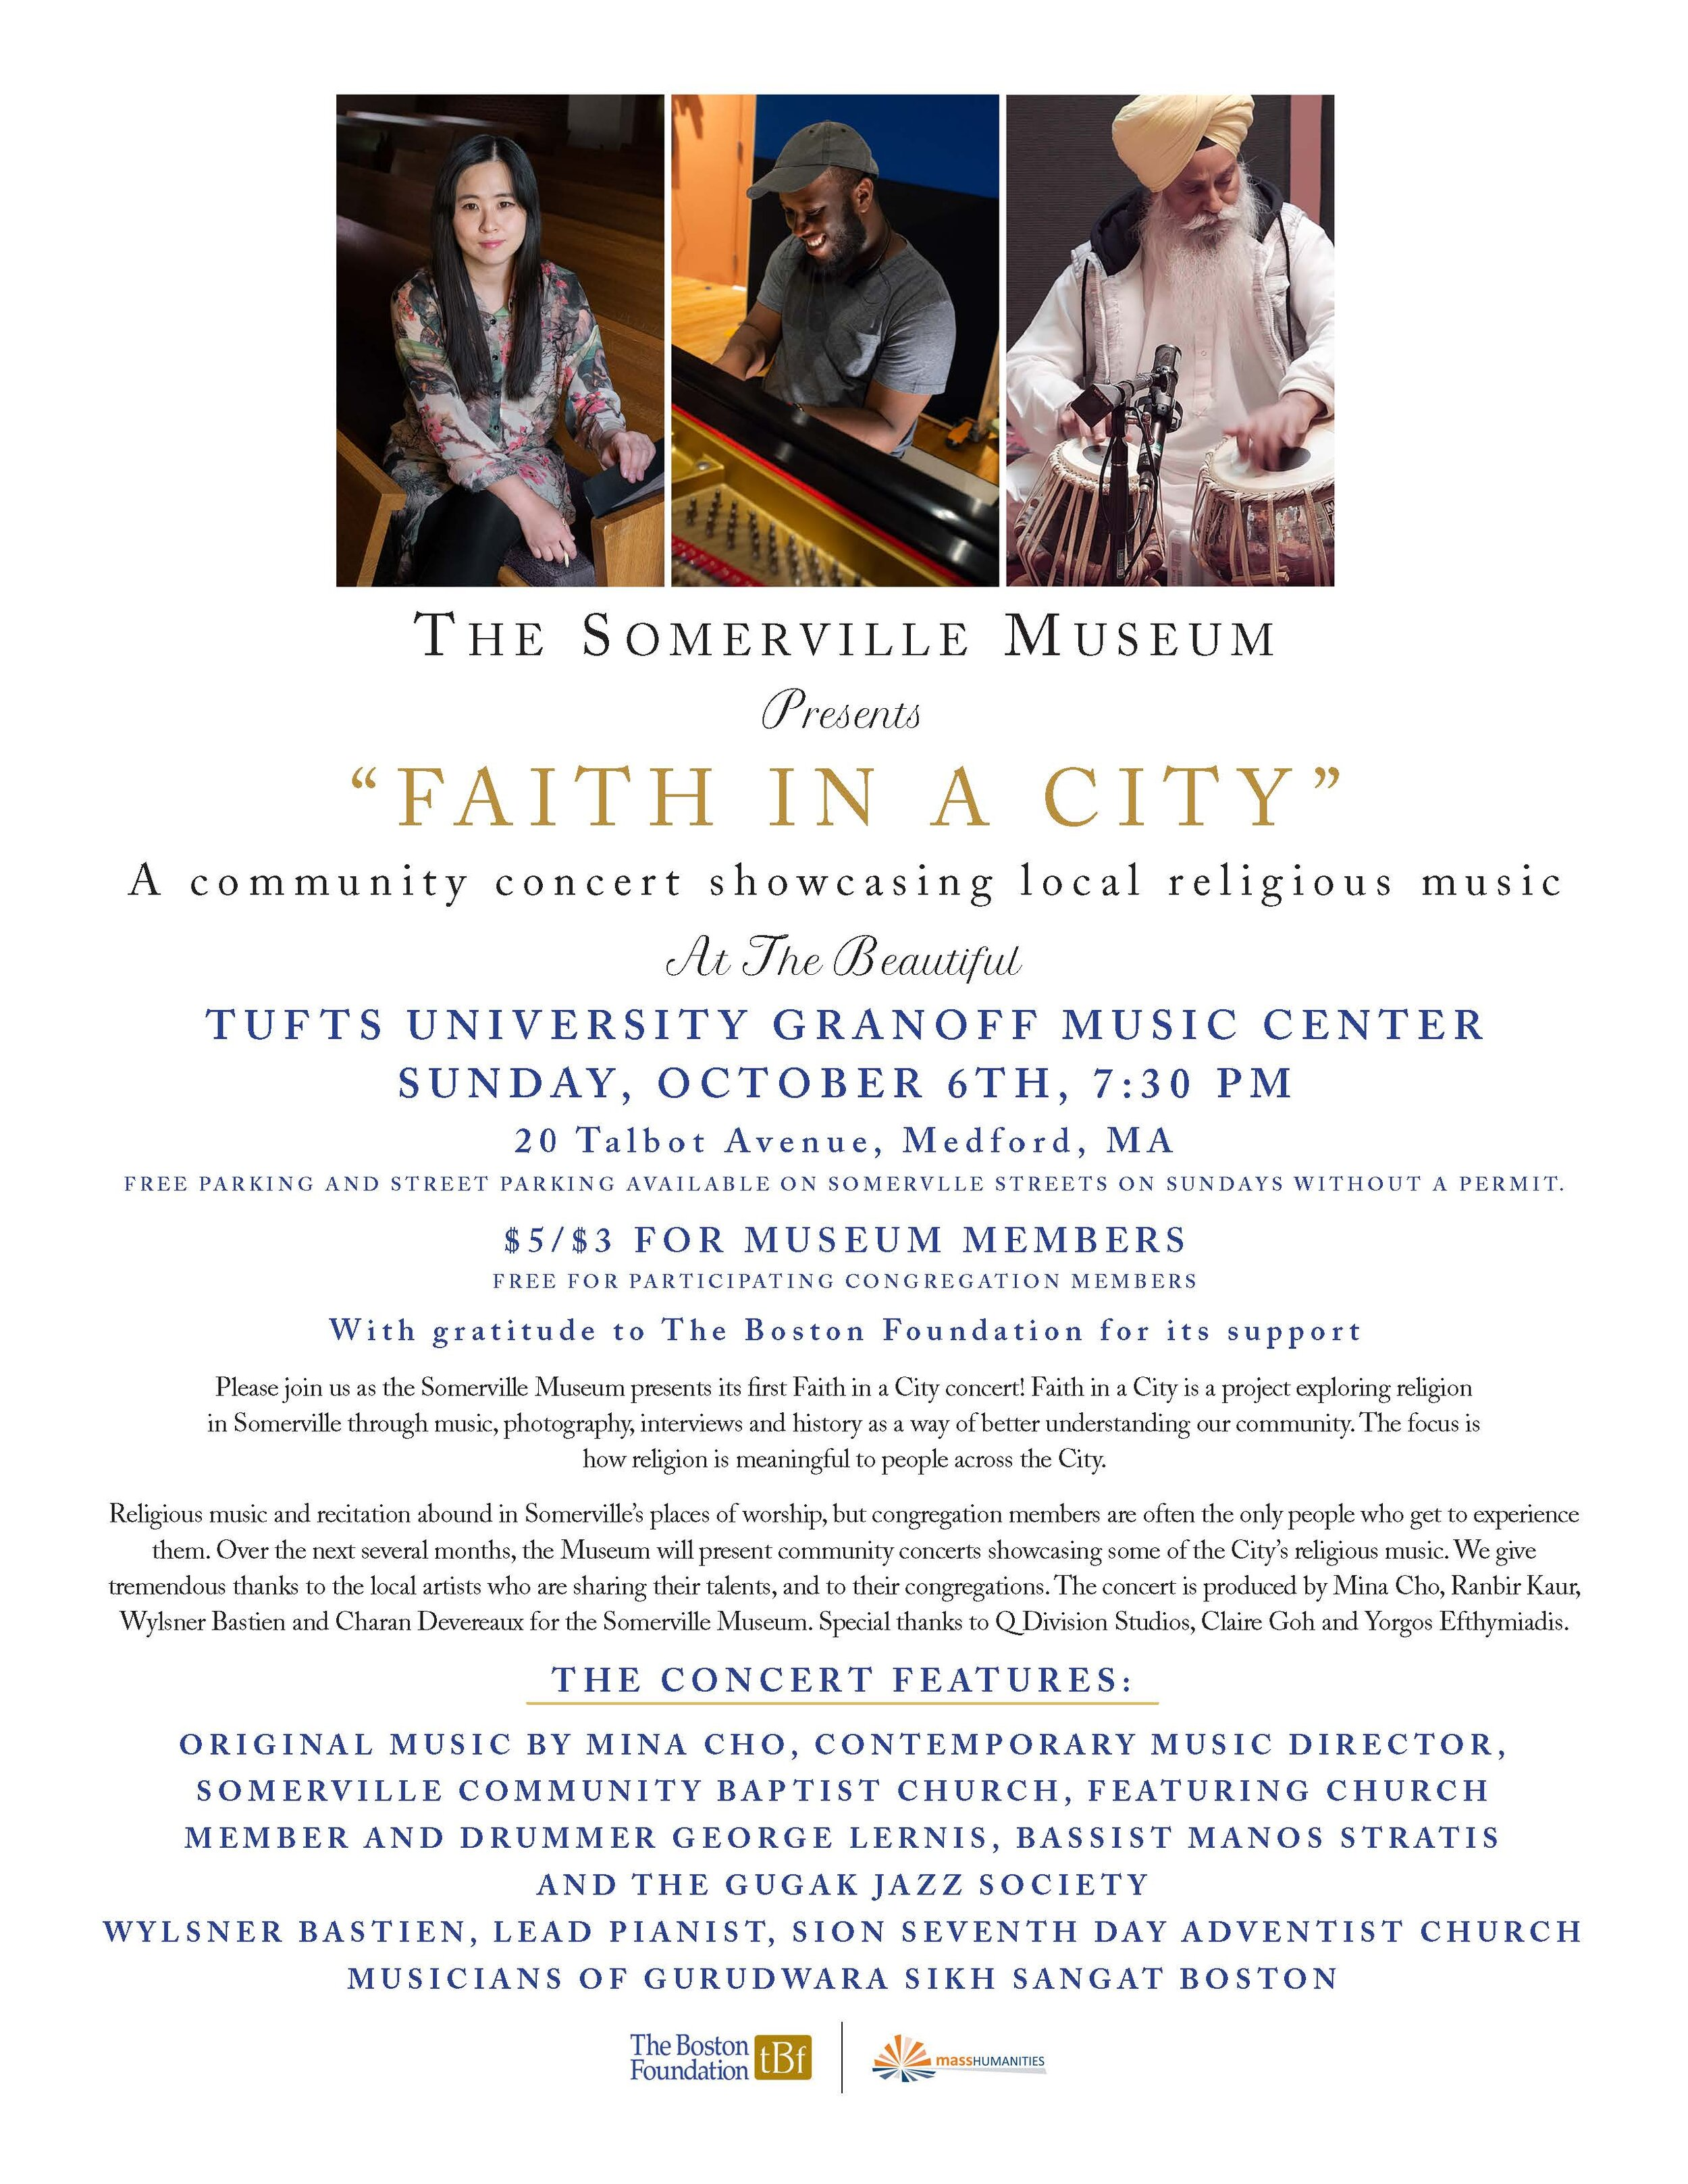 Faith in a City - A community concert showcasing local religious musicTufts University Granoff Music CenterSunday, October 6, 2019 at 7:30 pm